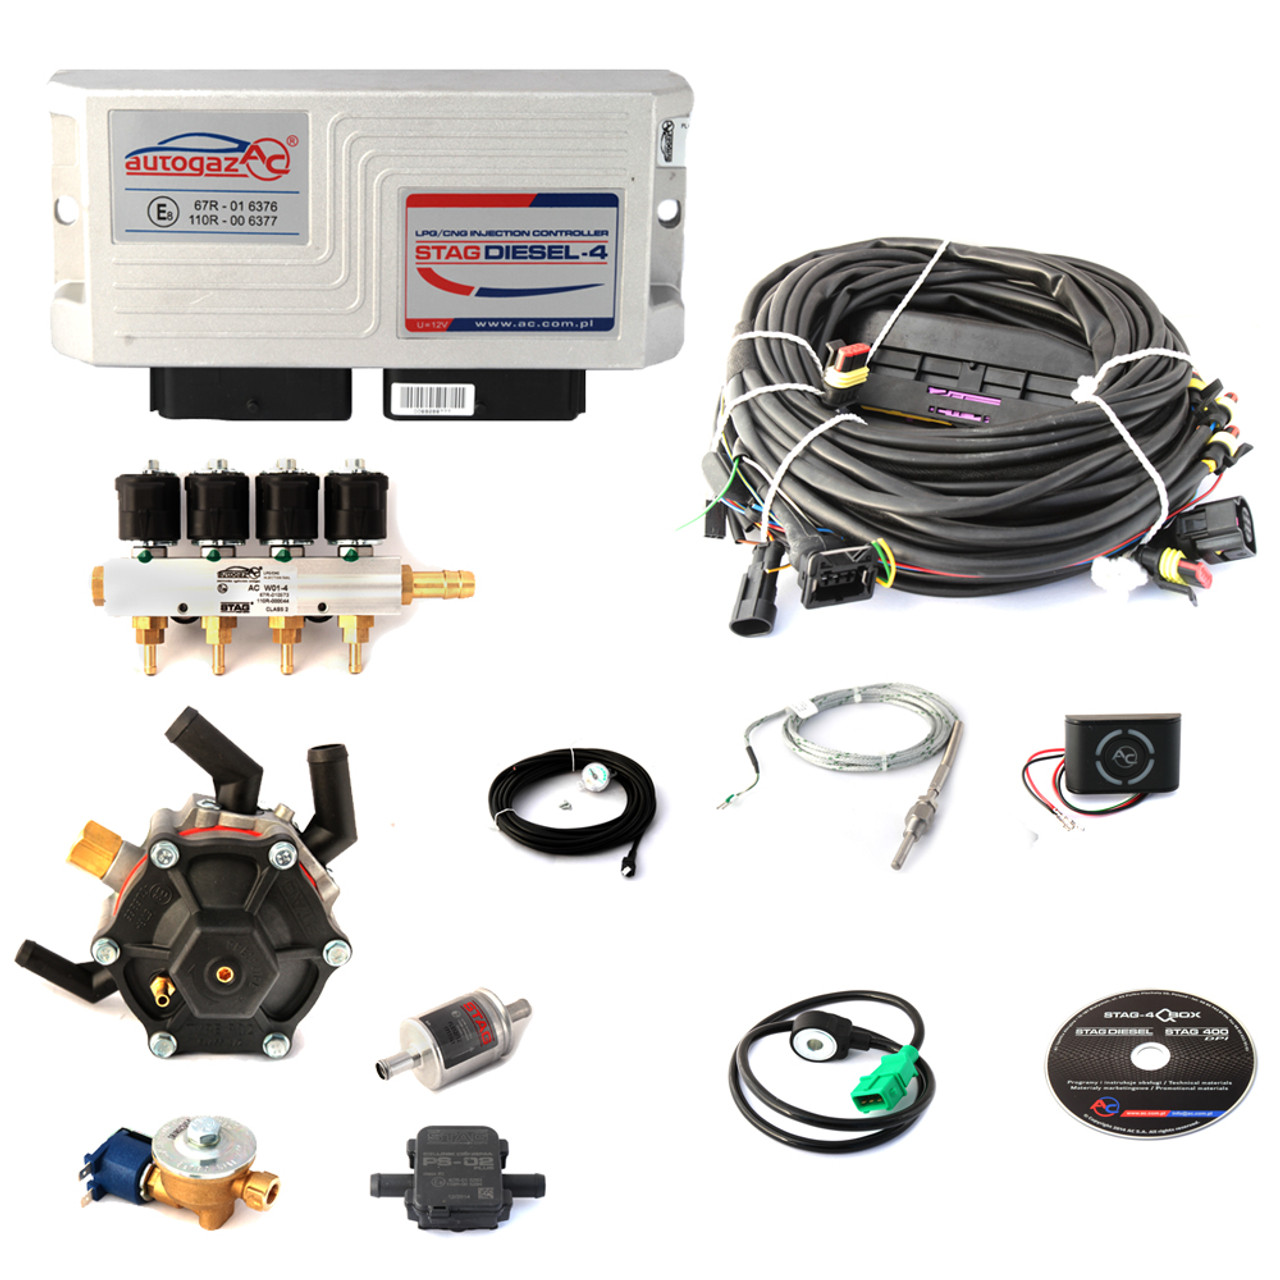 Ac Stag Diesel Lpg Conversion Kit Wiring Harness Cummins Exhaust Temperature Controller Autogas For Engines Full Front Probes Reducer Injectors Ecu